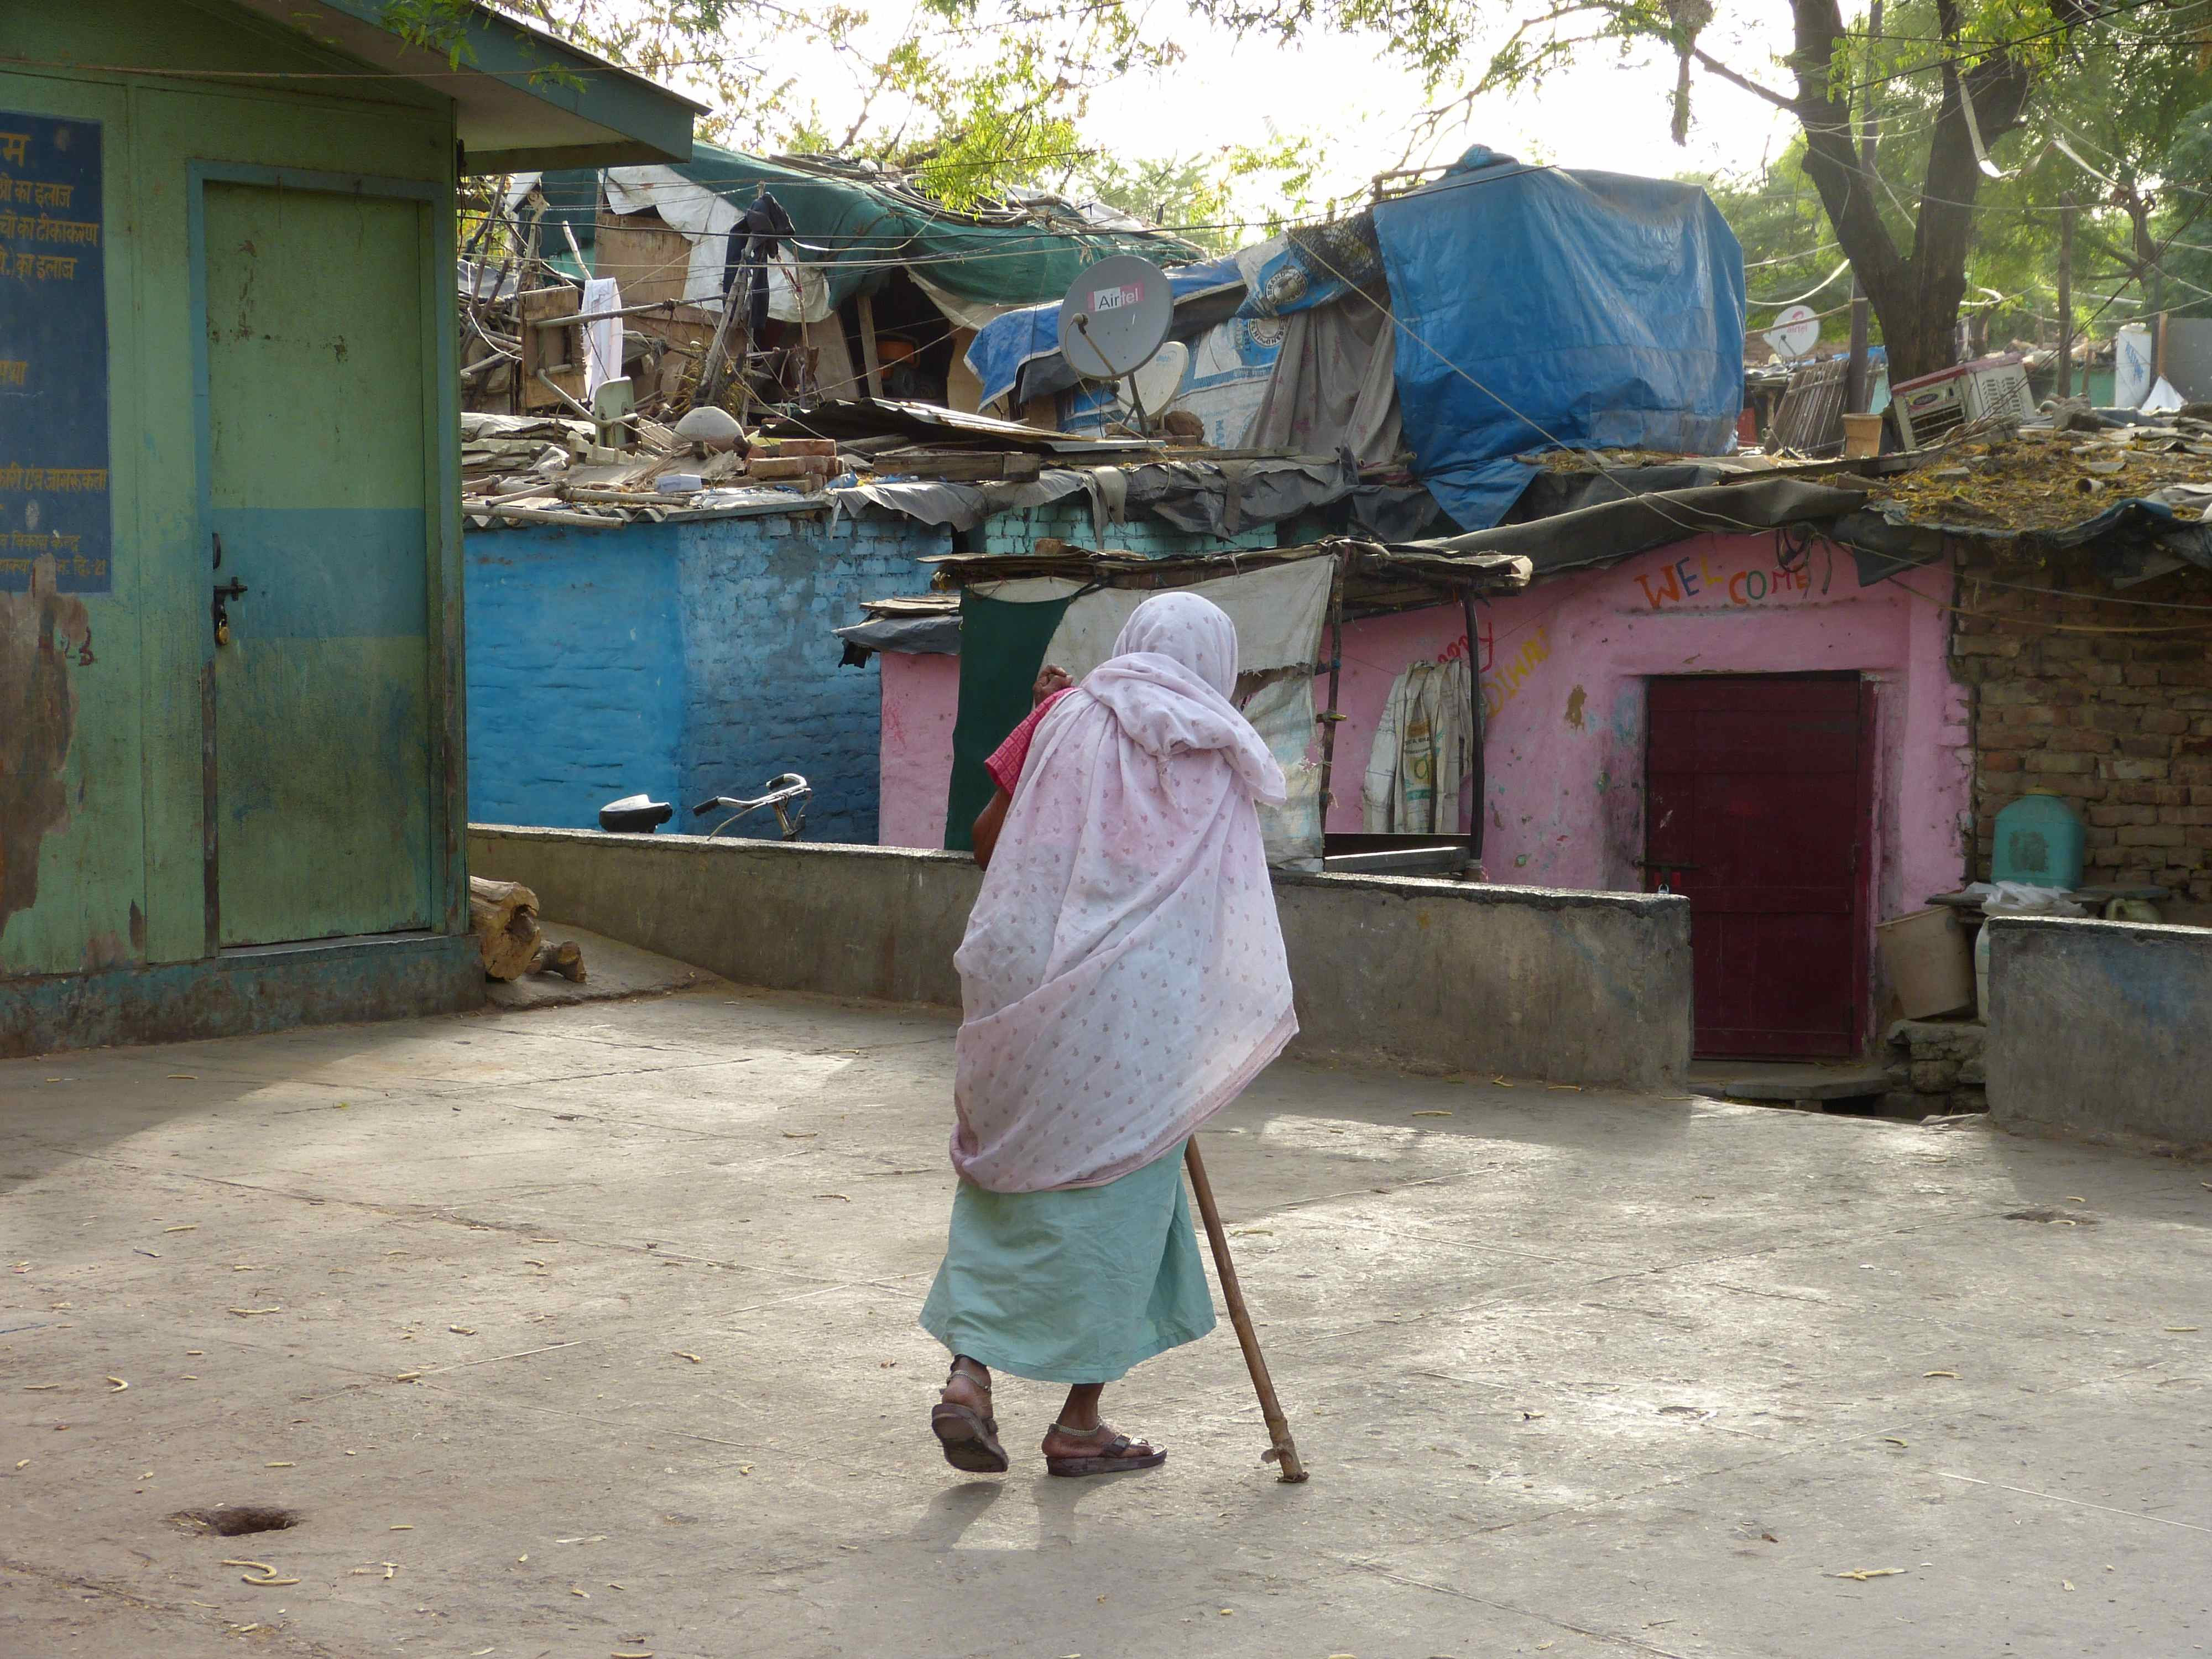 Old woman returning from public toilet for thousands in a Delhi slum